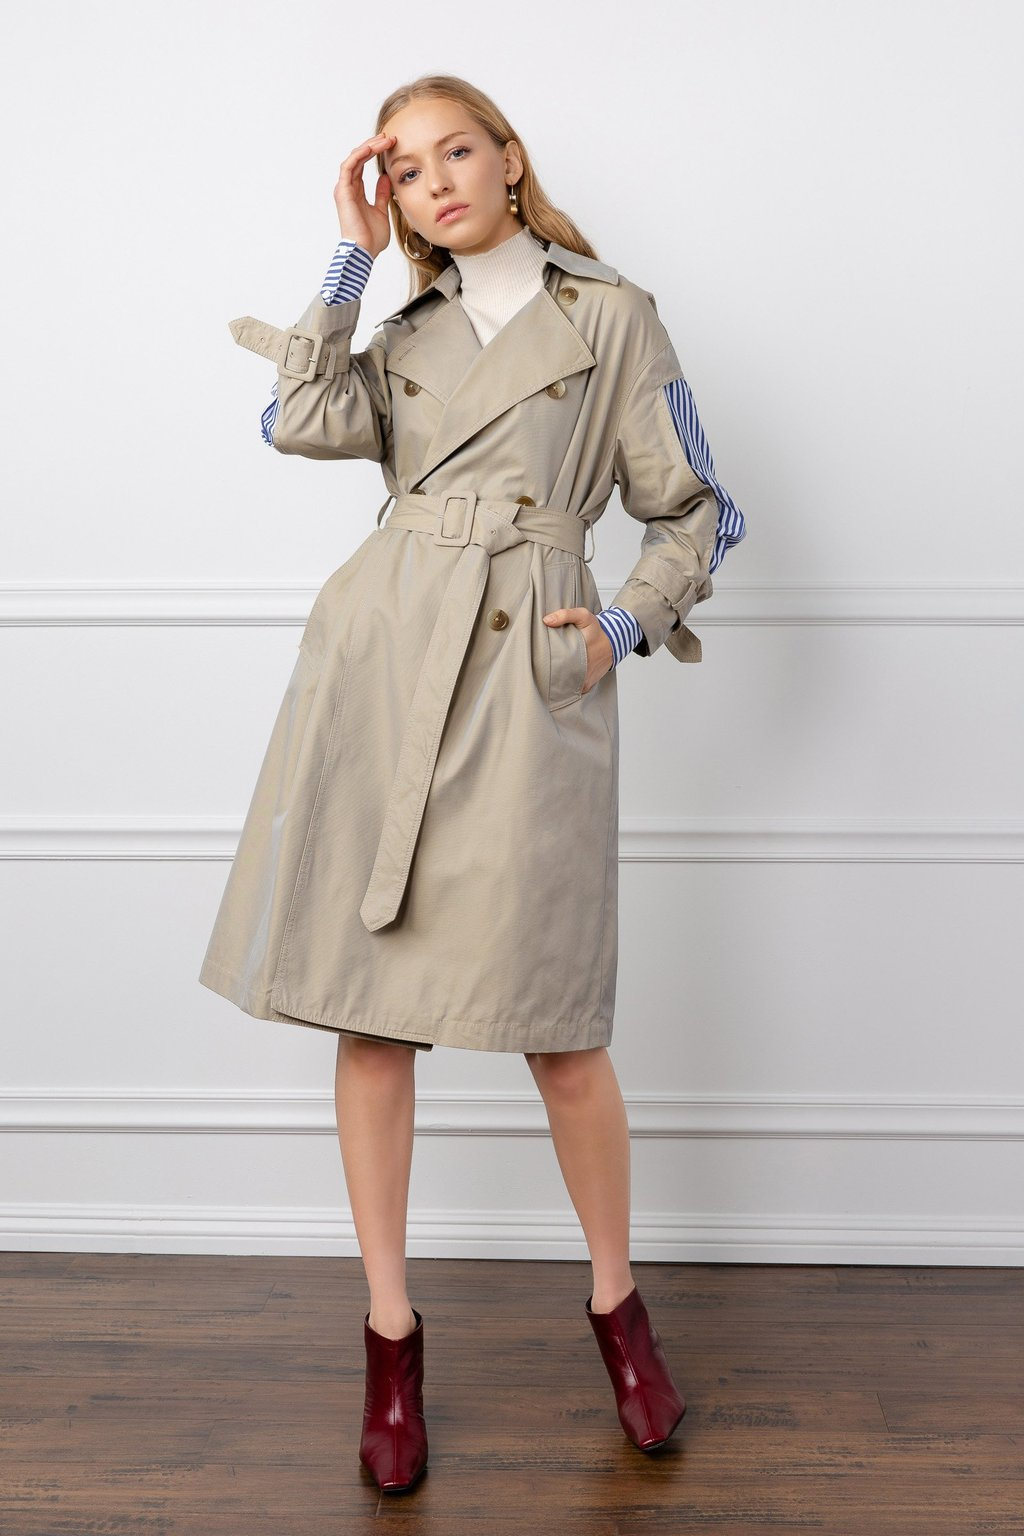 Hildy Trench Coat by J.ING women's fashion clothing